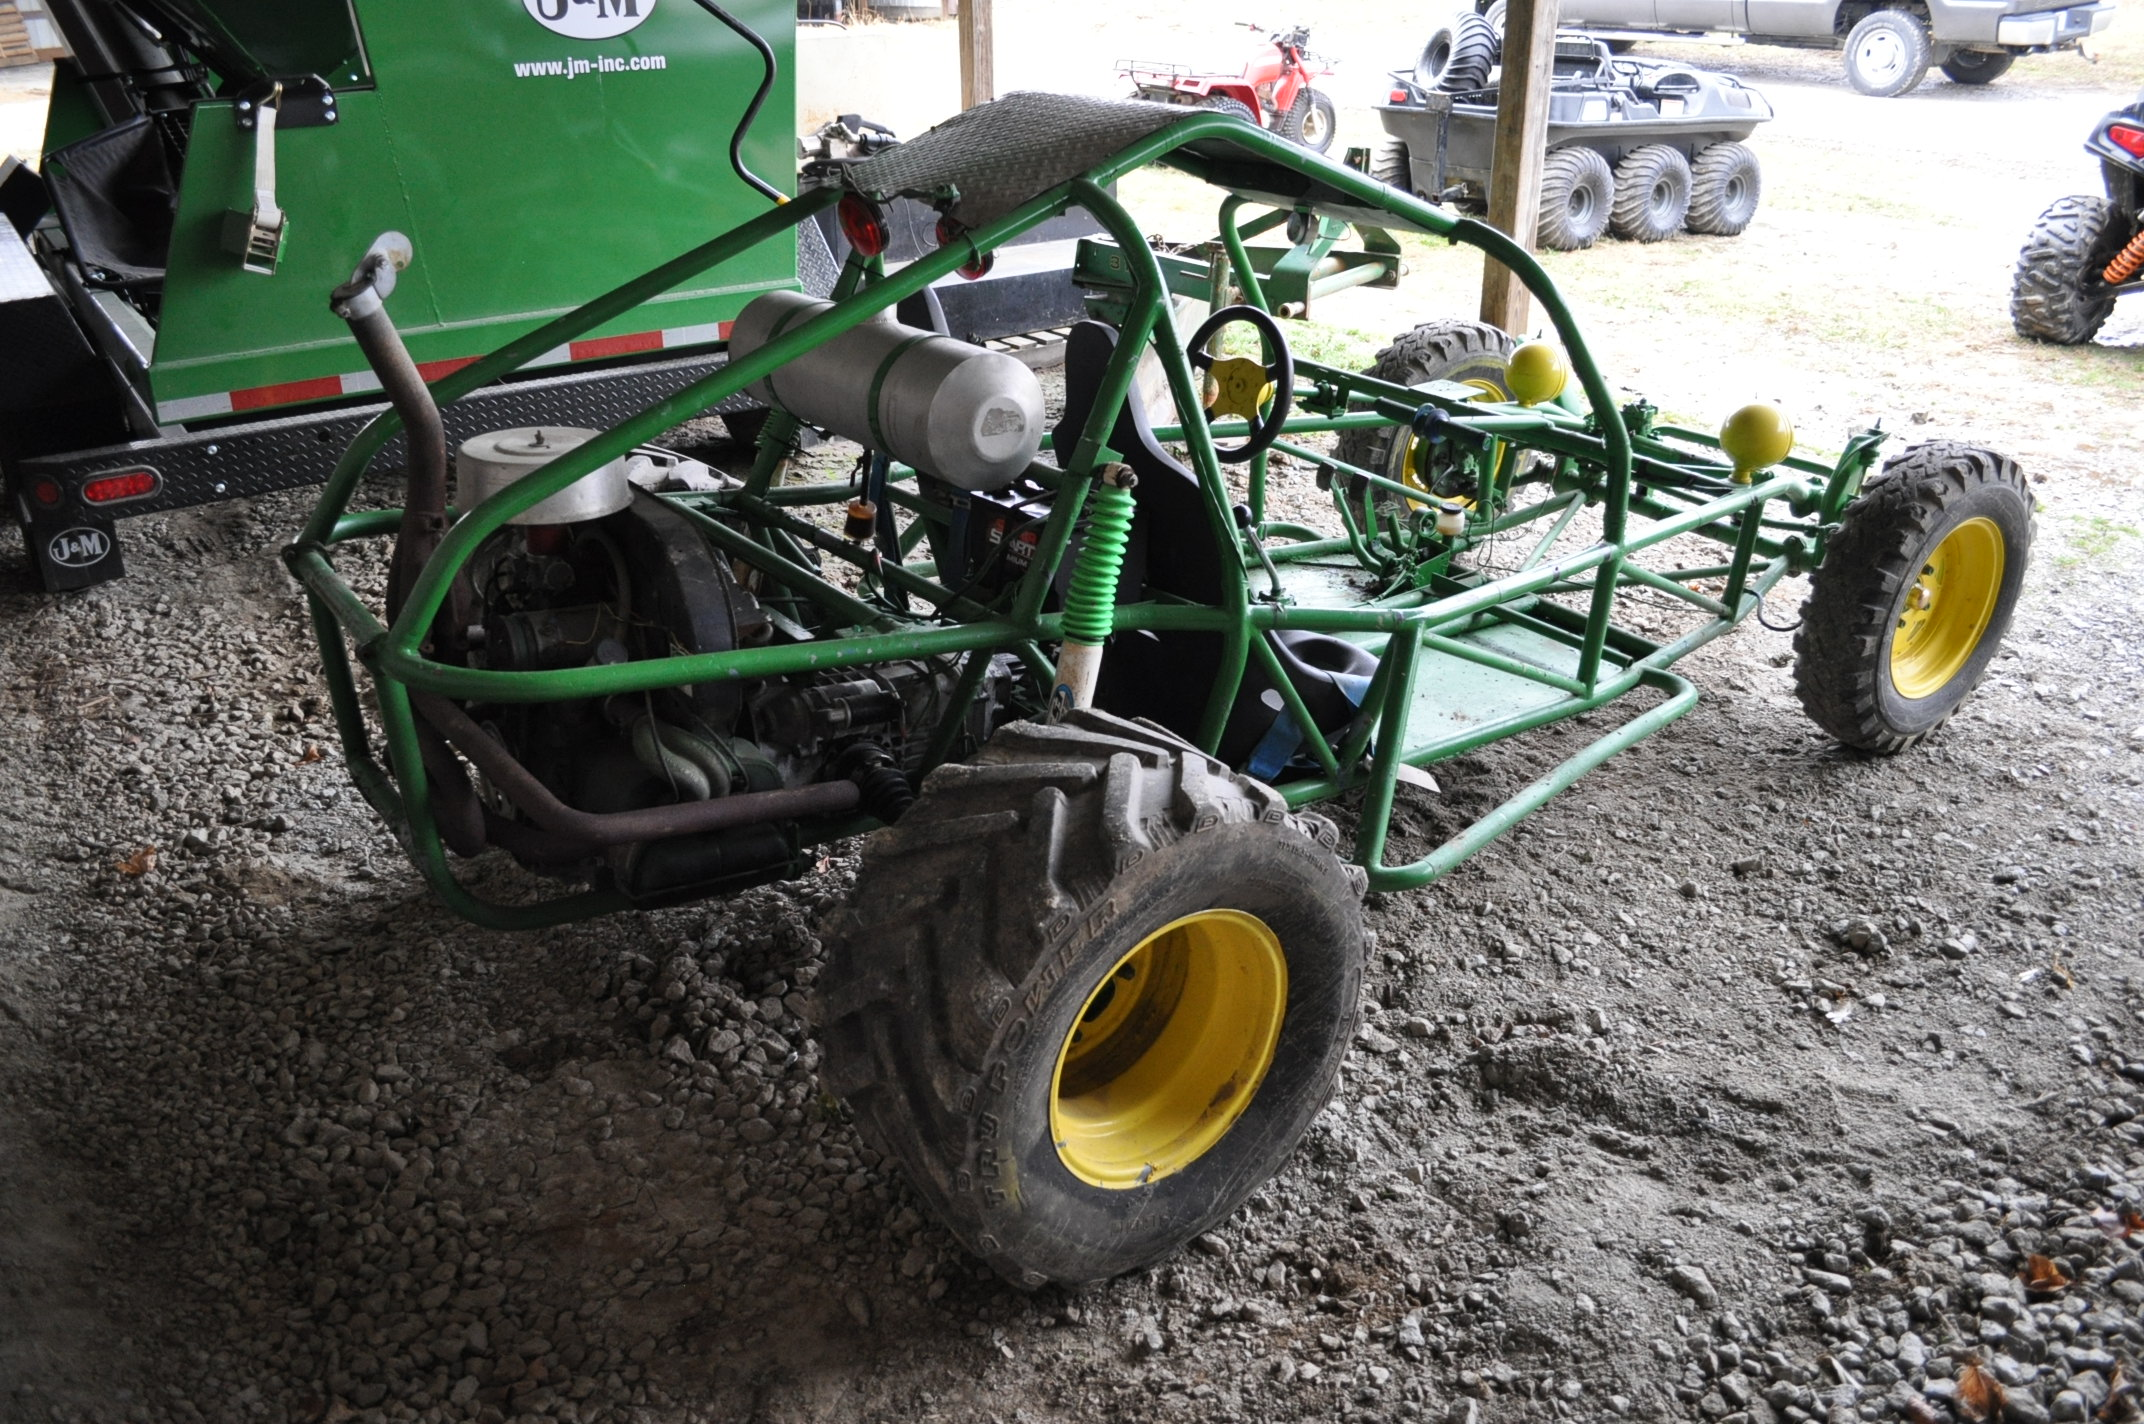 Dune buggy, VW air-cooled gas engine, 31 x 15.5-15 rear, 6.70-15LT front - Image 4 of 10